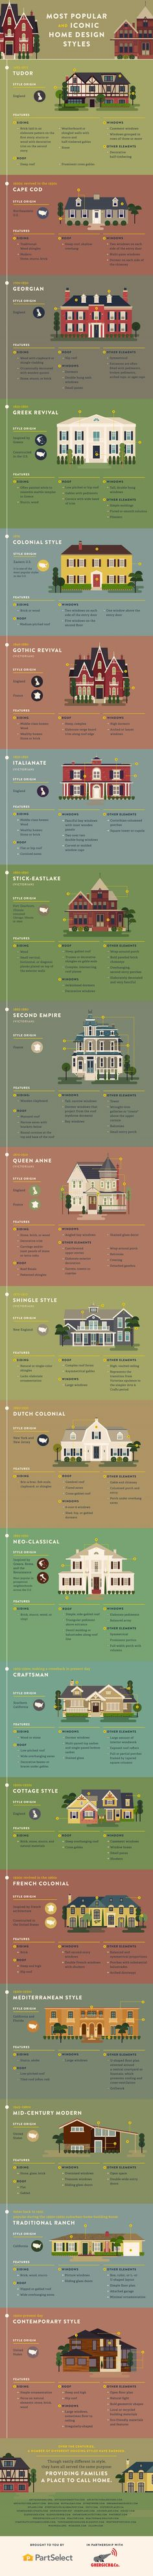 Do you know a Georgian from a Greek Revival? Brush up on your home architecture knowledge with this infographic.